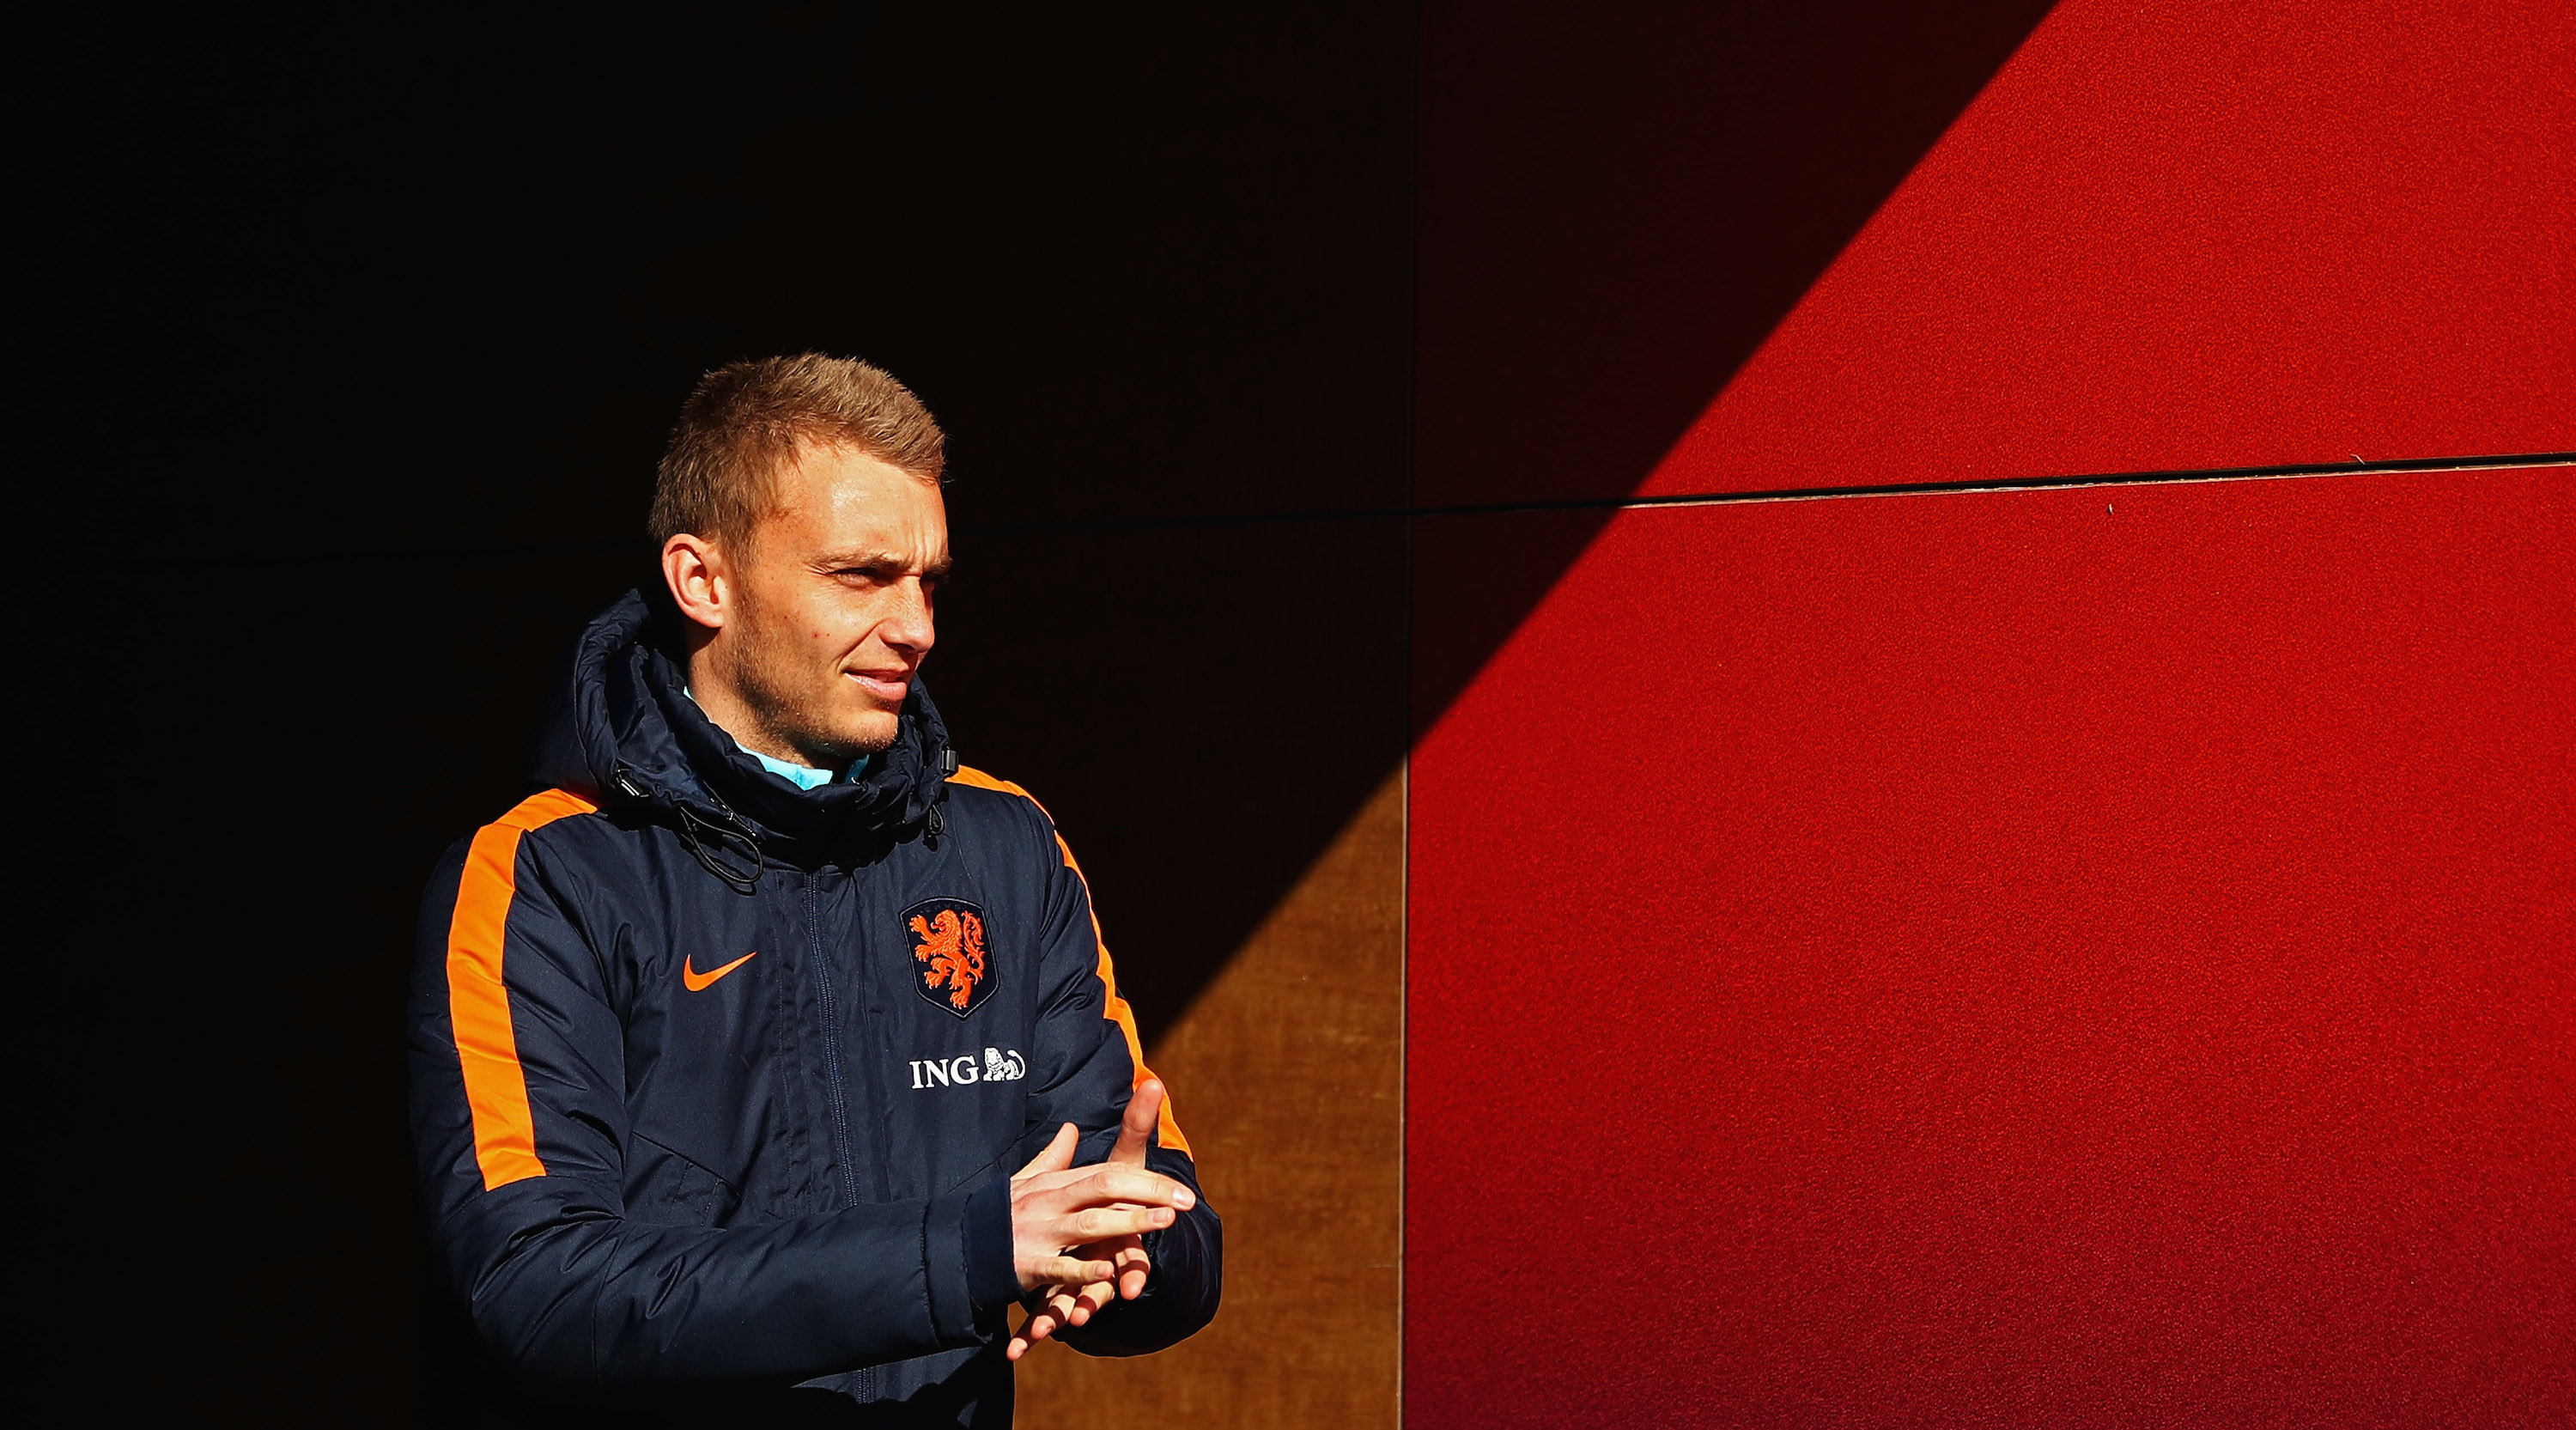 ZEIST, NETHERLANDS - MARCH 20: Goalkeeper, Jasper Cillessen of the Netherlands walks out the players tunnel during the Netherlands Training session held at KNVB Sportcentrum on March 20, 2018 in Zeist, Netherlands. The Netherlands will play England in a International Friendly match on March 23 in the Amsterdam ArenA. (Photo by Dean Mouhtaropoulos/Getty Images)